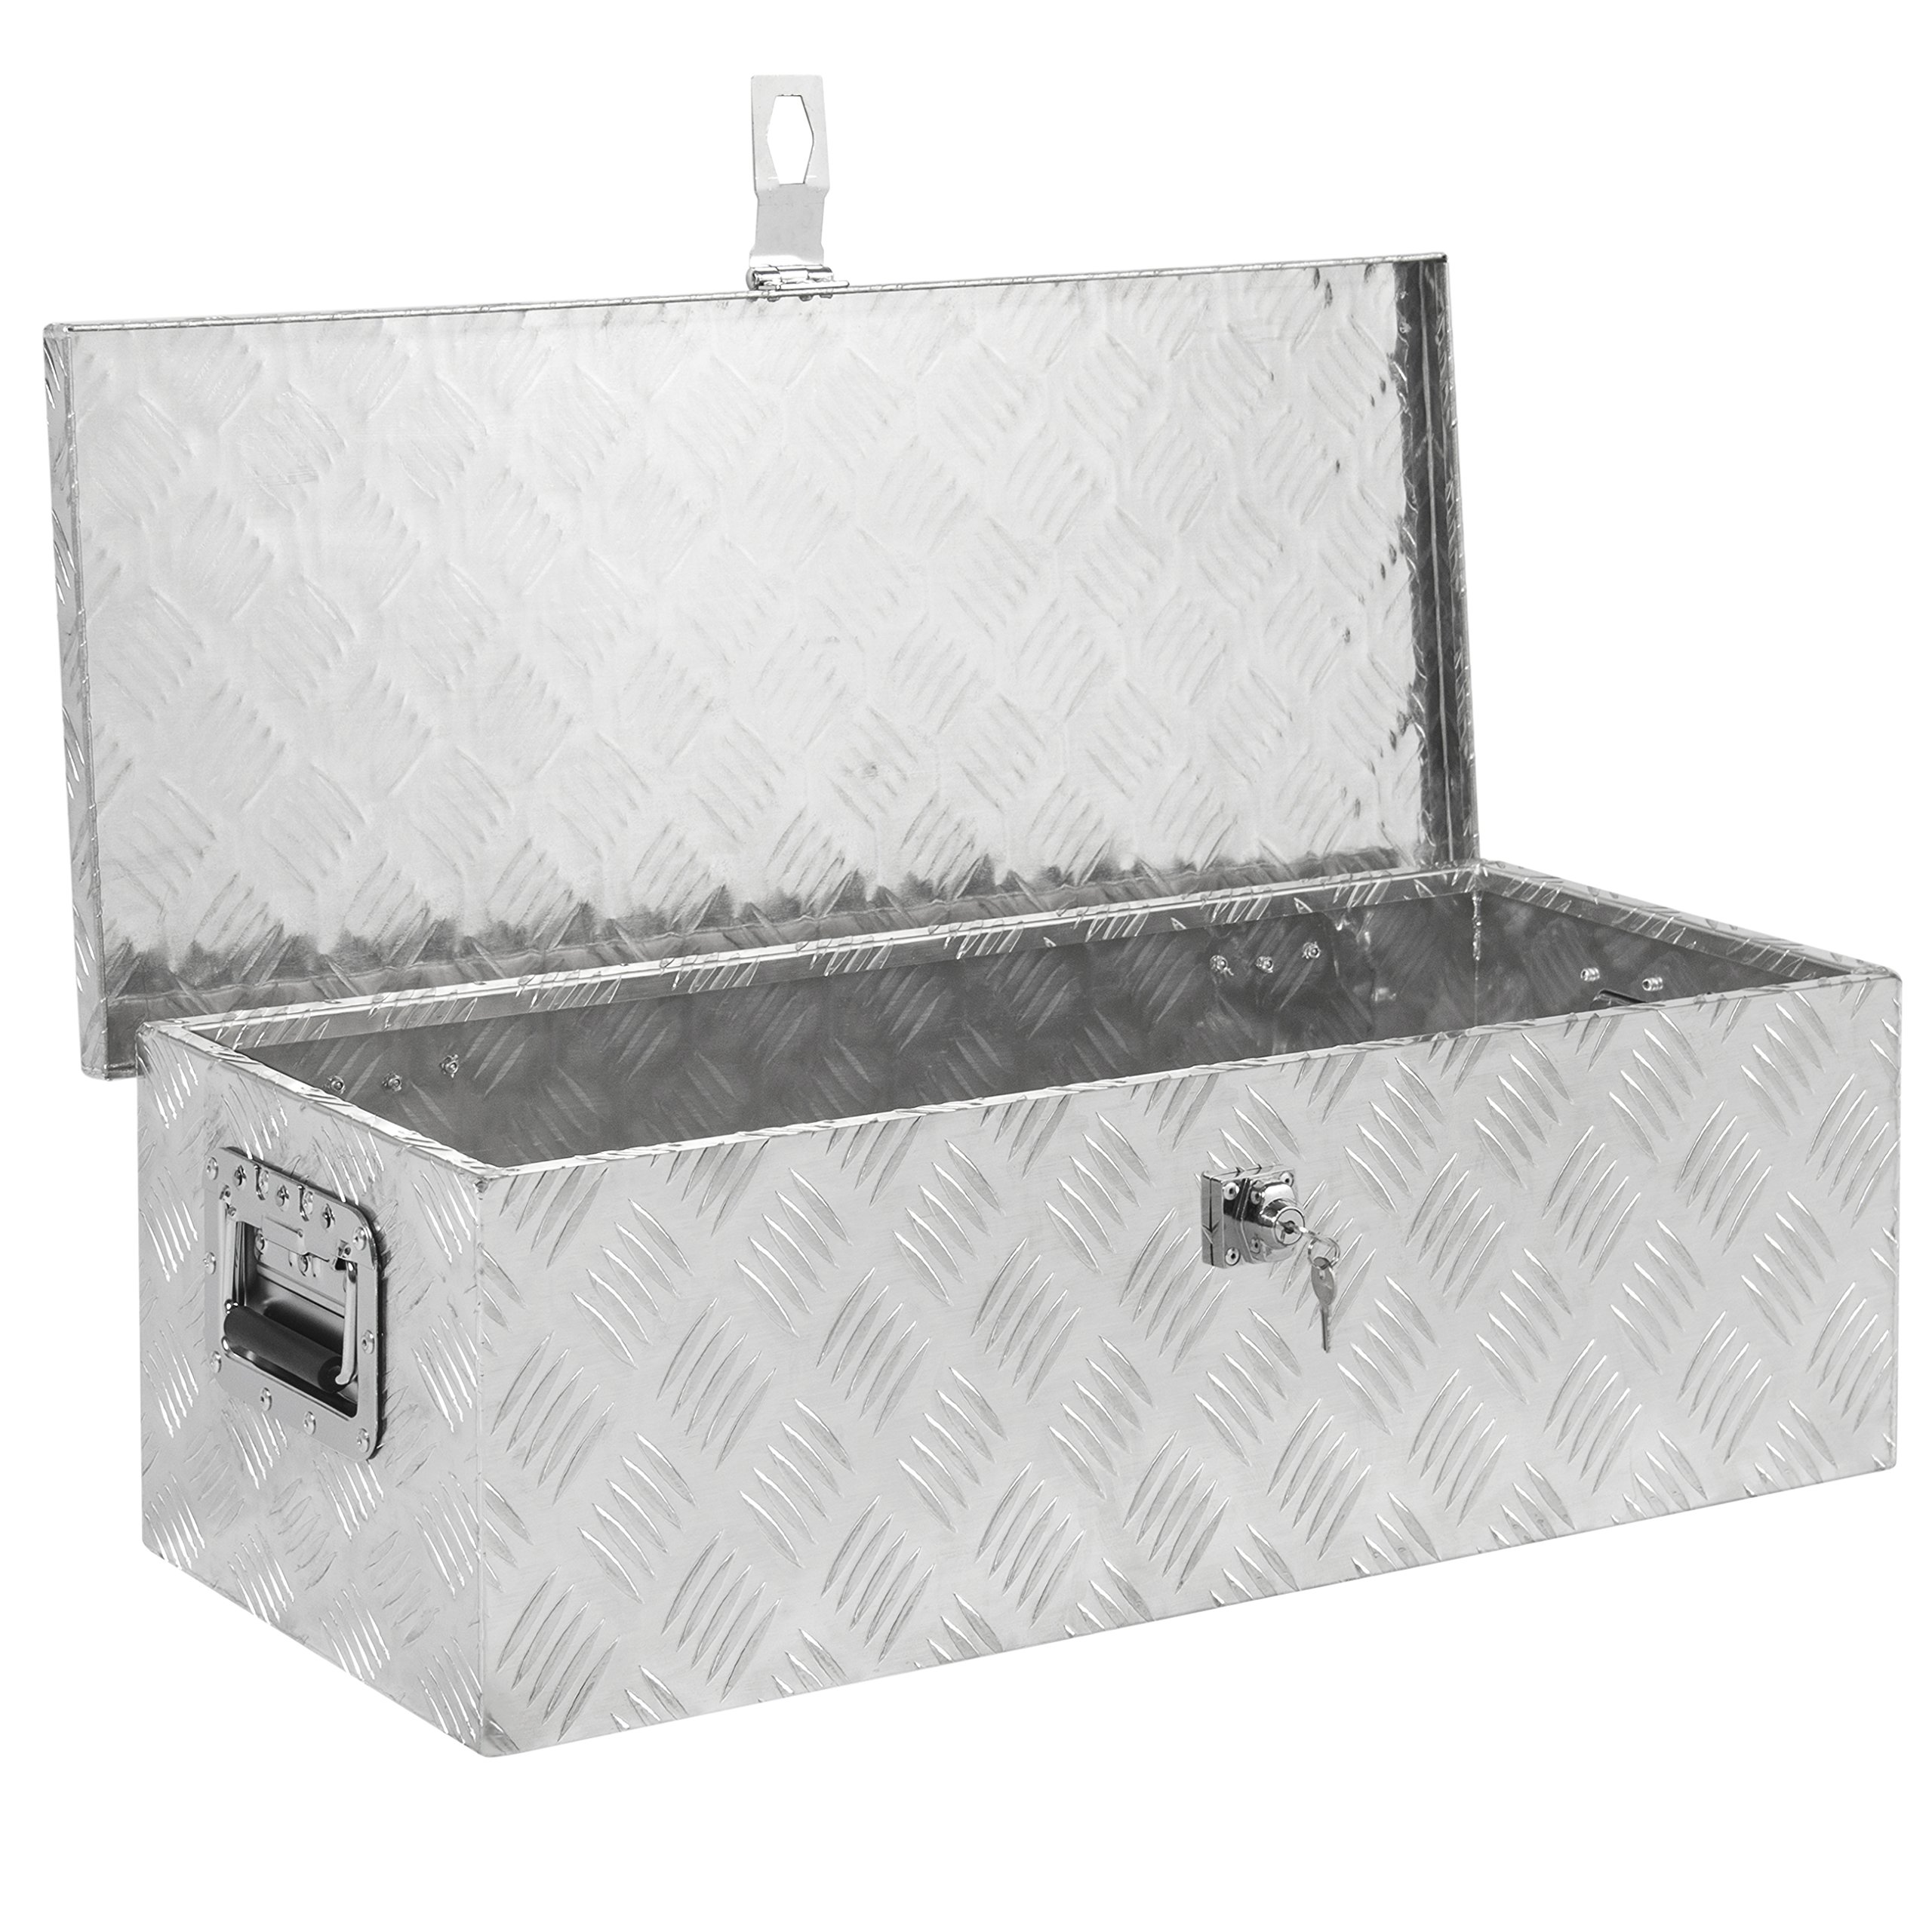 Best Choice Products 30in Aluminum Camper Tool Box w/ Lock and 2 Keys - Silver